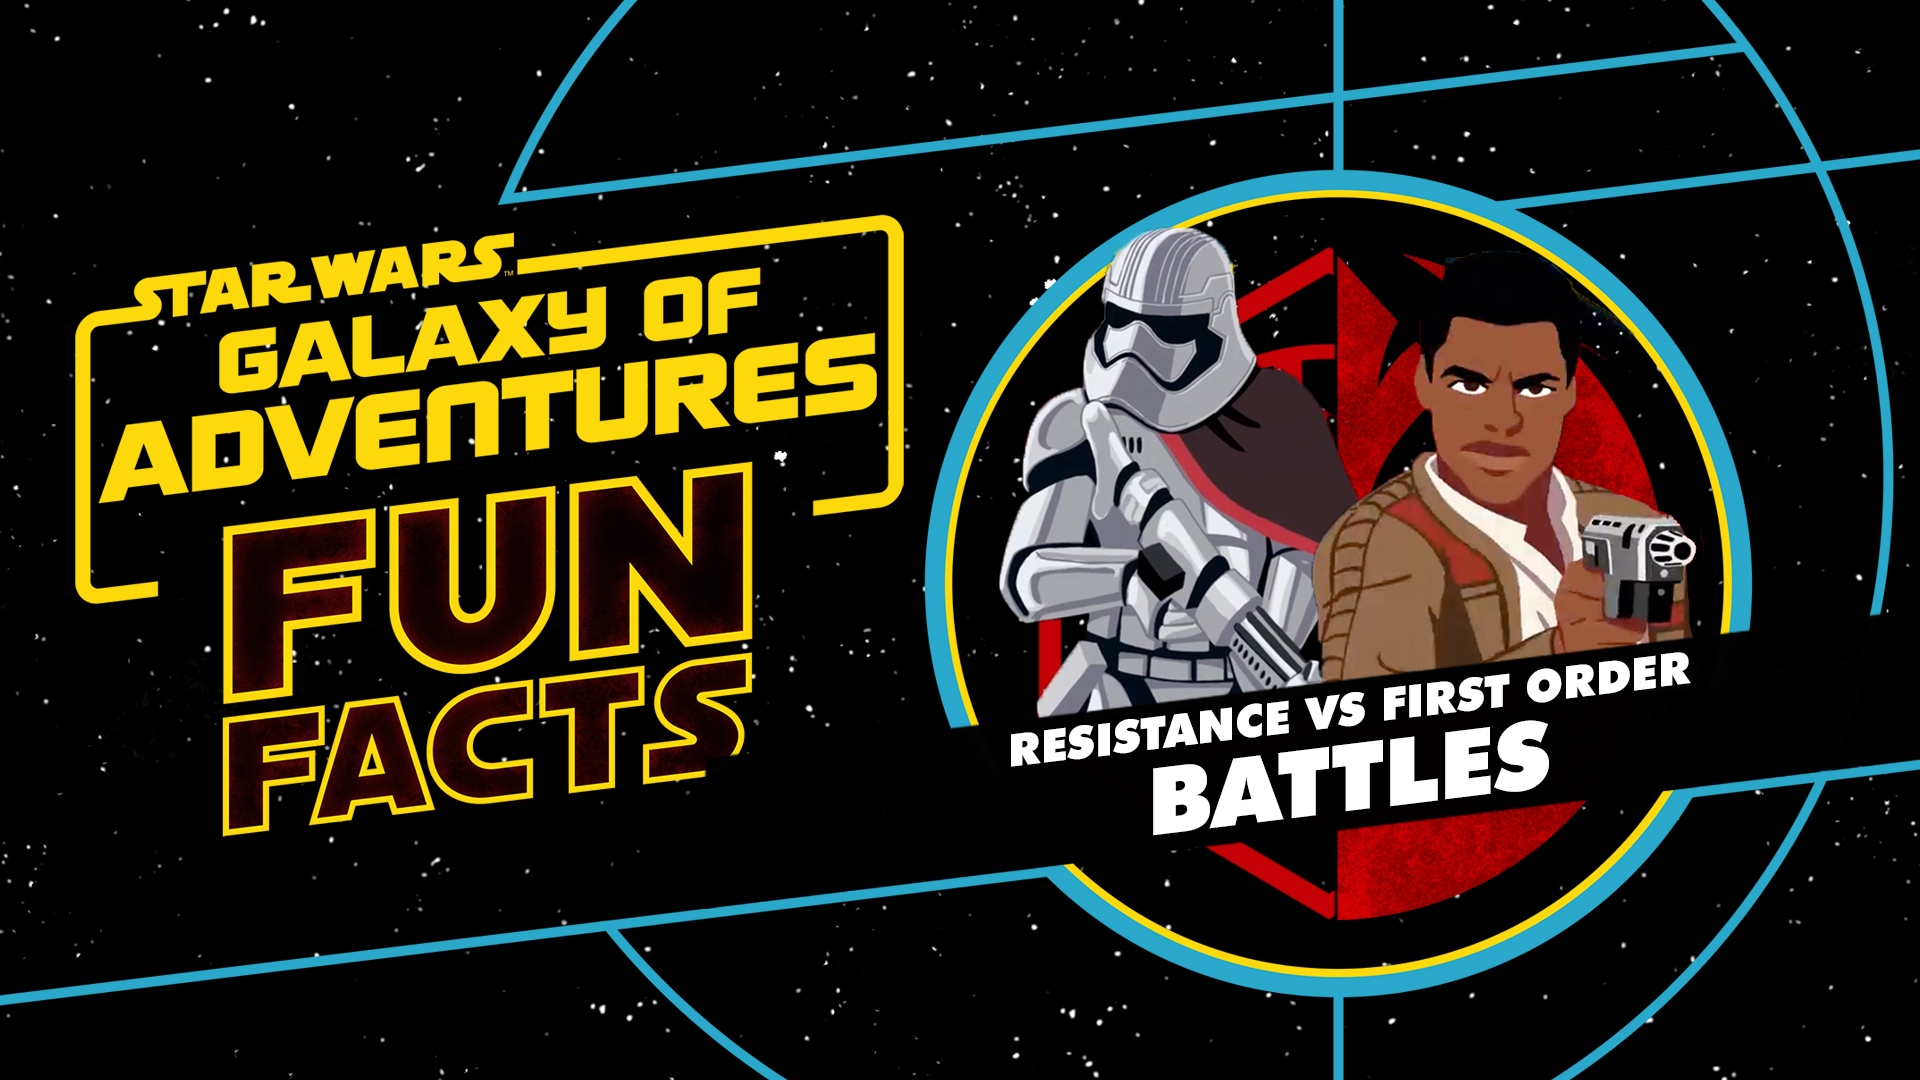 Resistance vs. First Order Battles | Star Wars Galaxy of Adventures Fun Facts